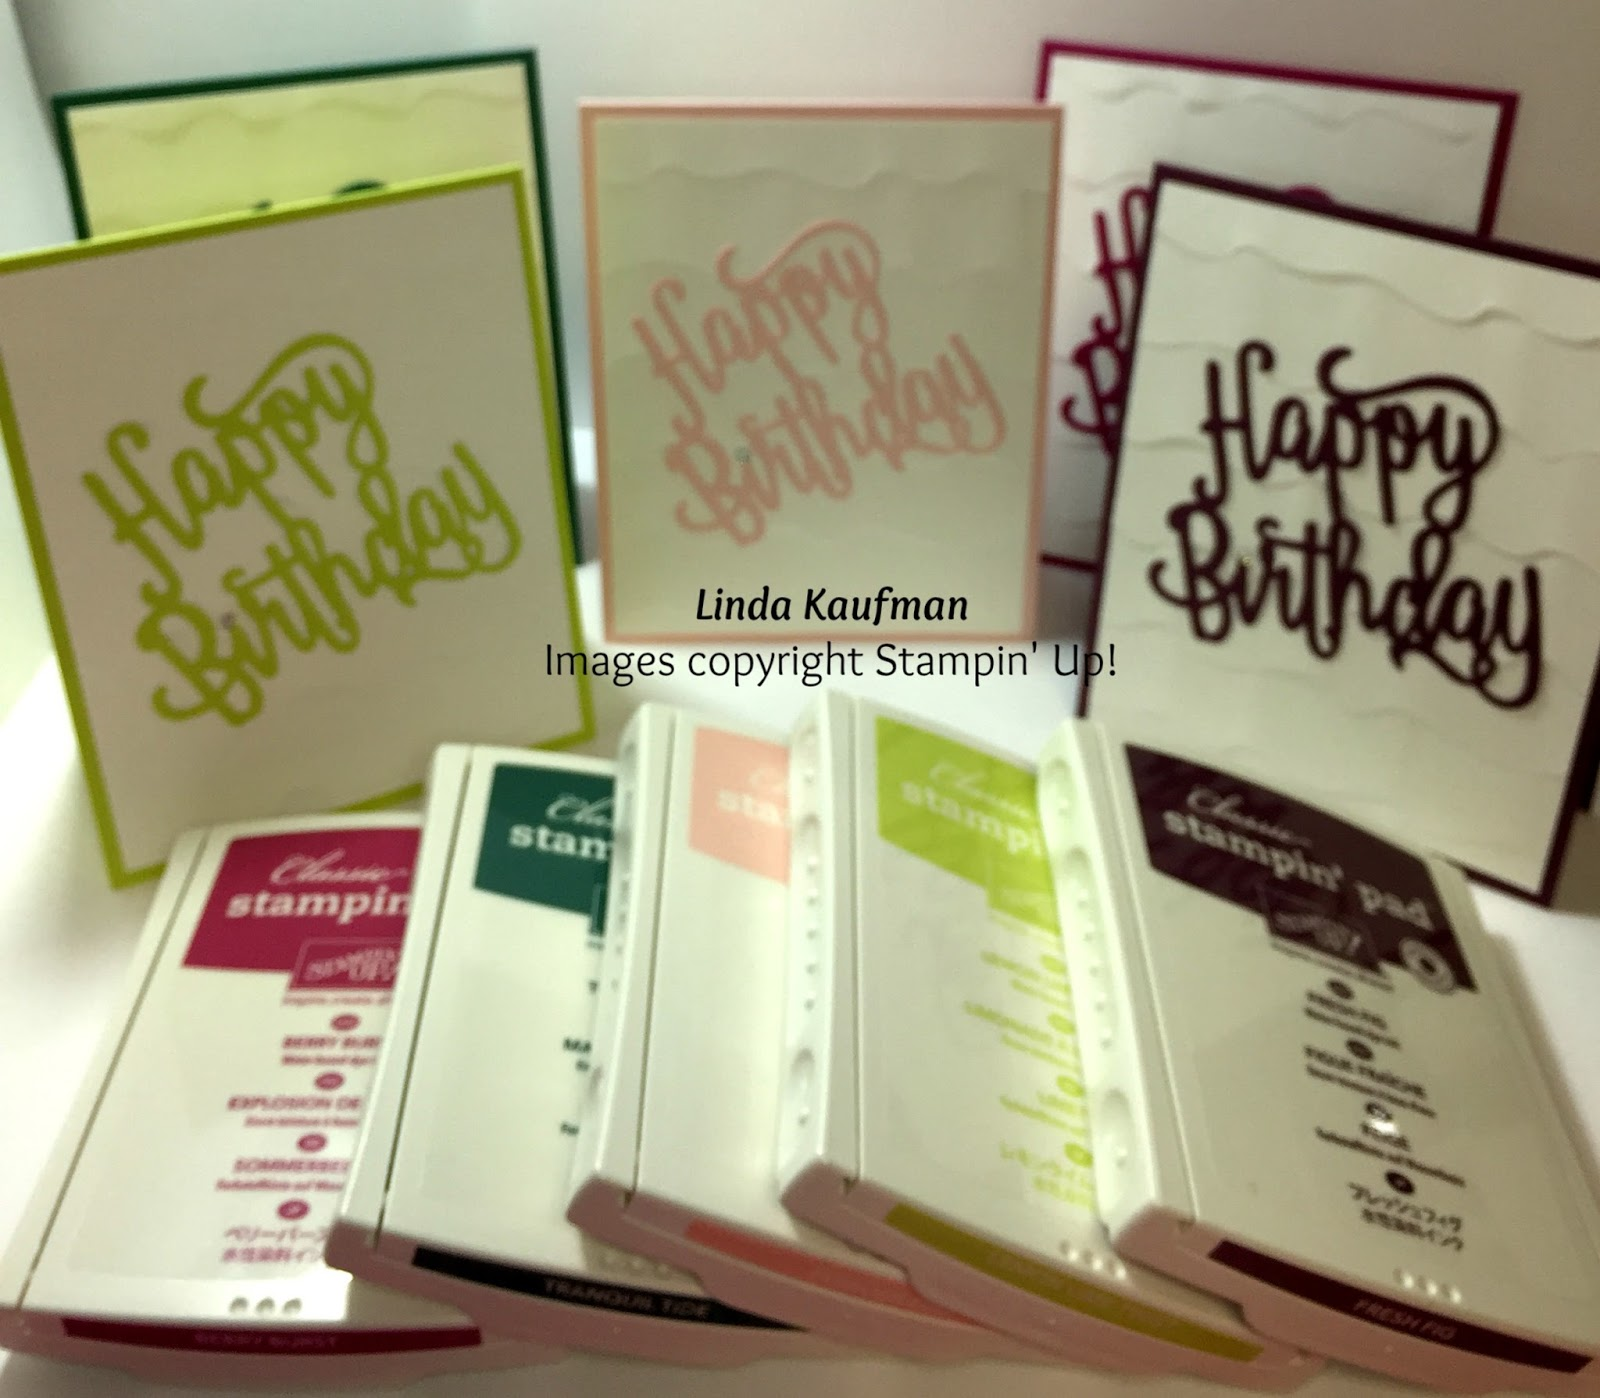 Here Are The New In Colors All Their Glory With Help Of Stampin Ups Happy Birthday Thinlit Die Multipurpose Adhesive Sheets And Dynamic